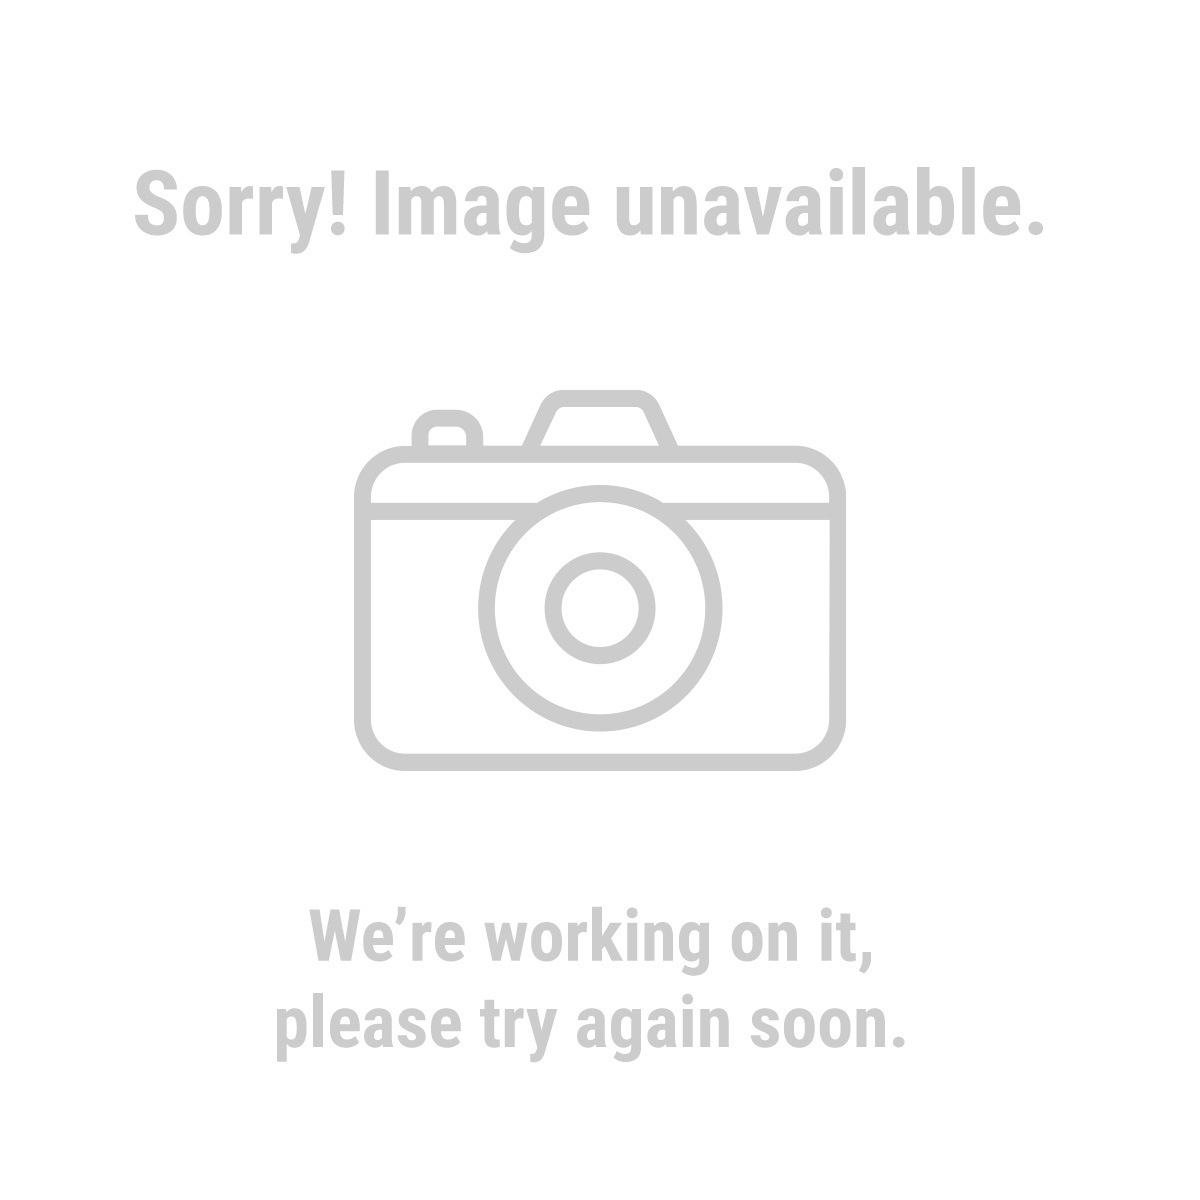 "H-M 66360 3"" x 7/8"" Rubber Swivel Caster"